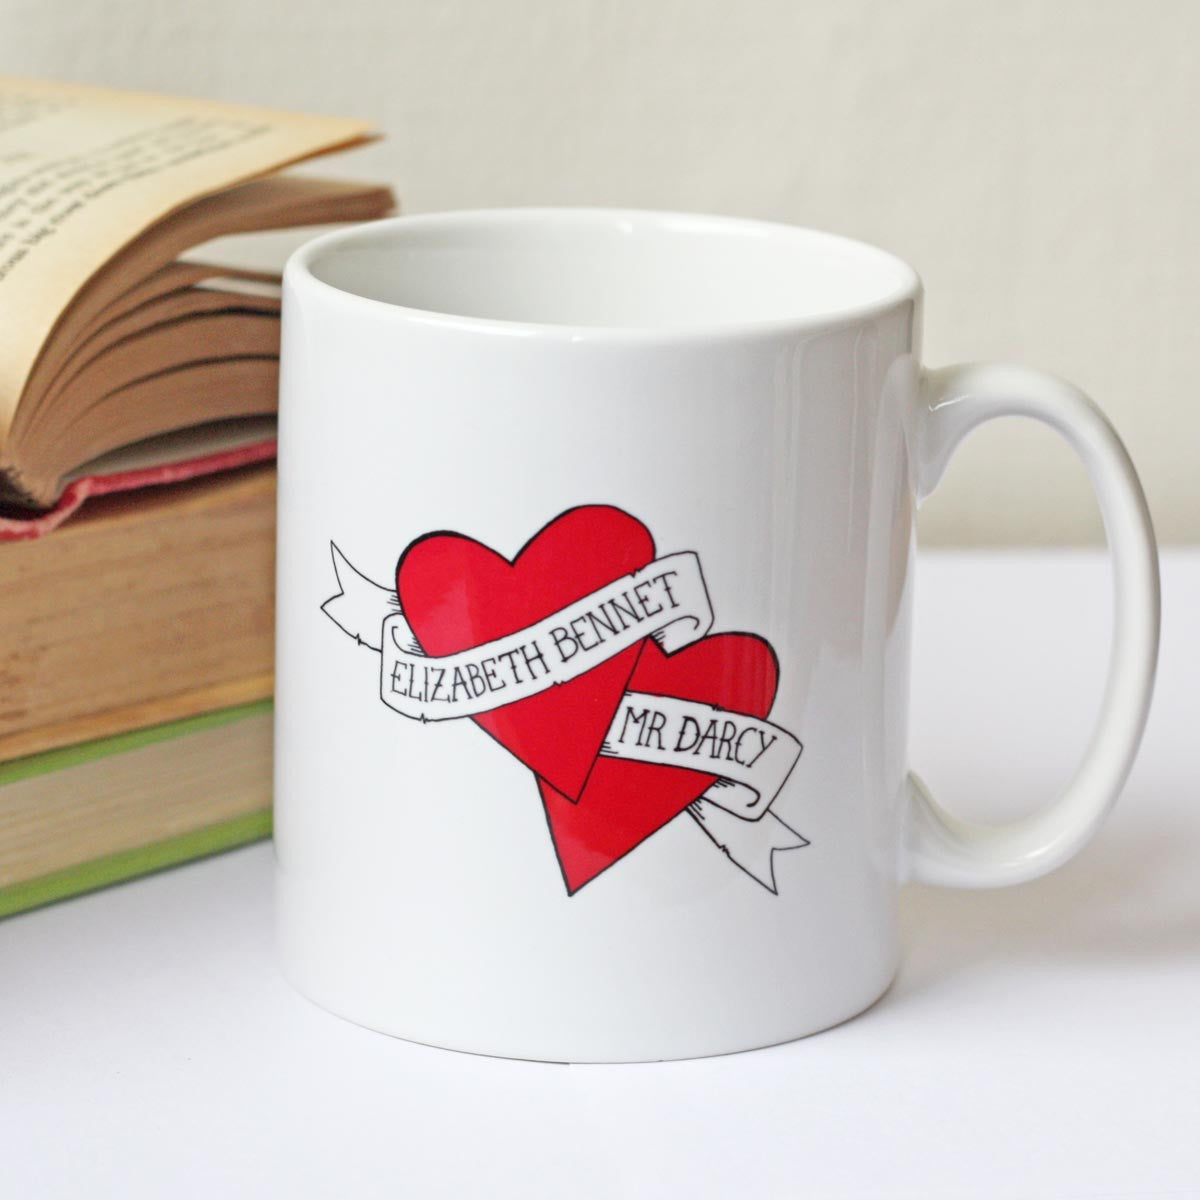 Mug - Jane Austen - Elizabeth Bennet & Mr Darcy-Mug-Book Lover Gifts